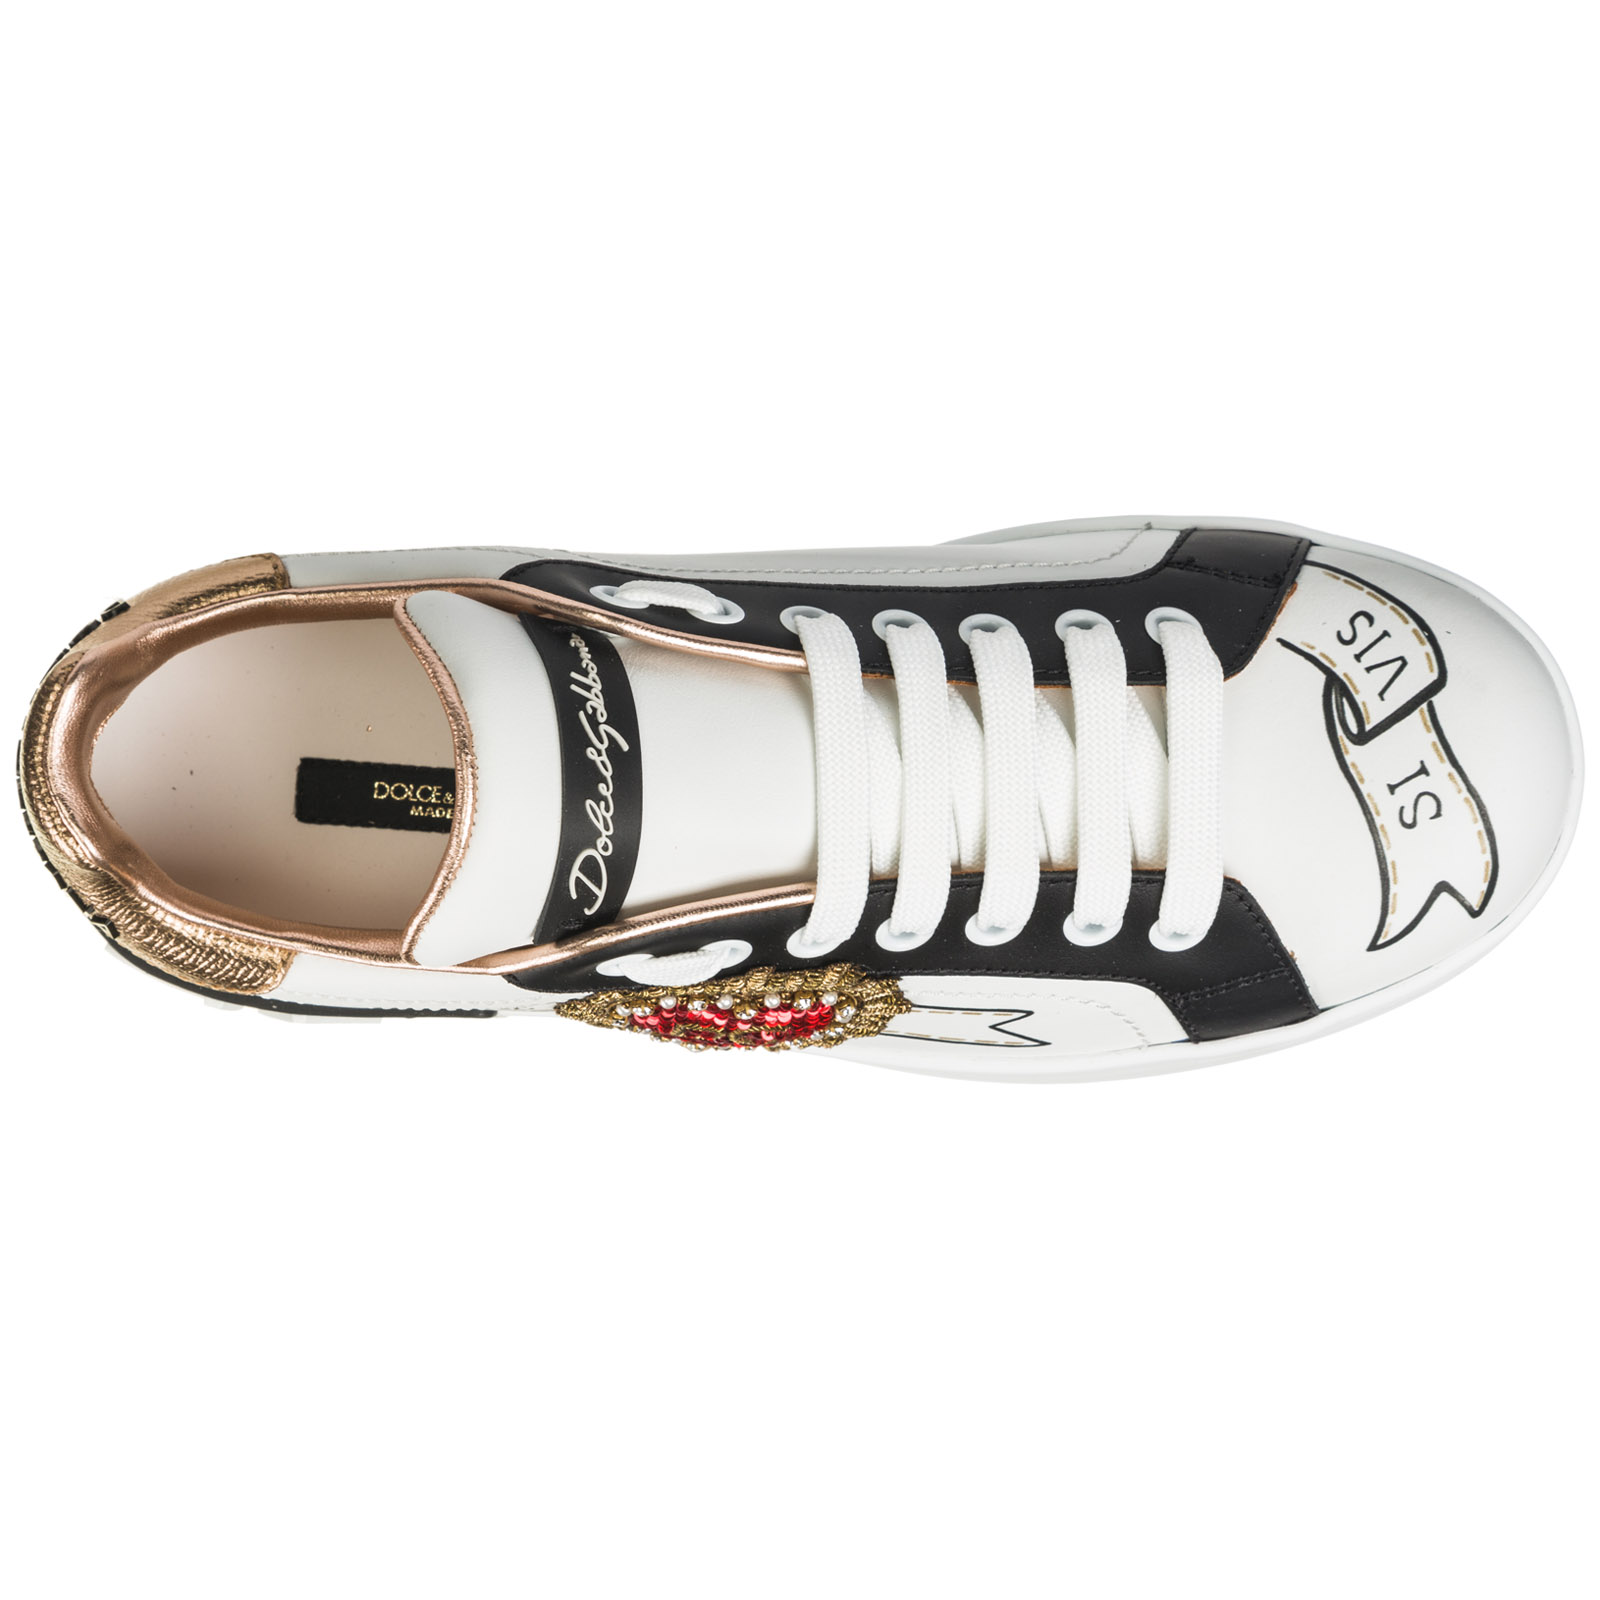 Women's shoes leather trainers sneakers portofino